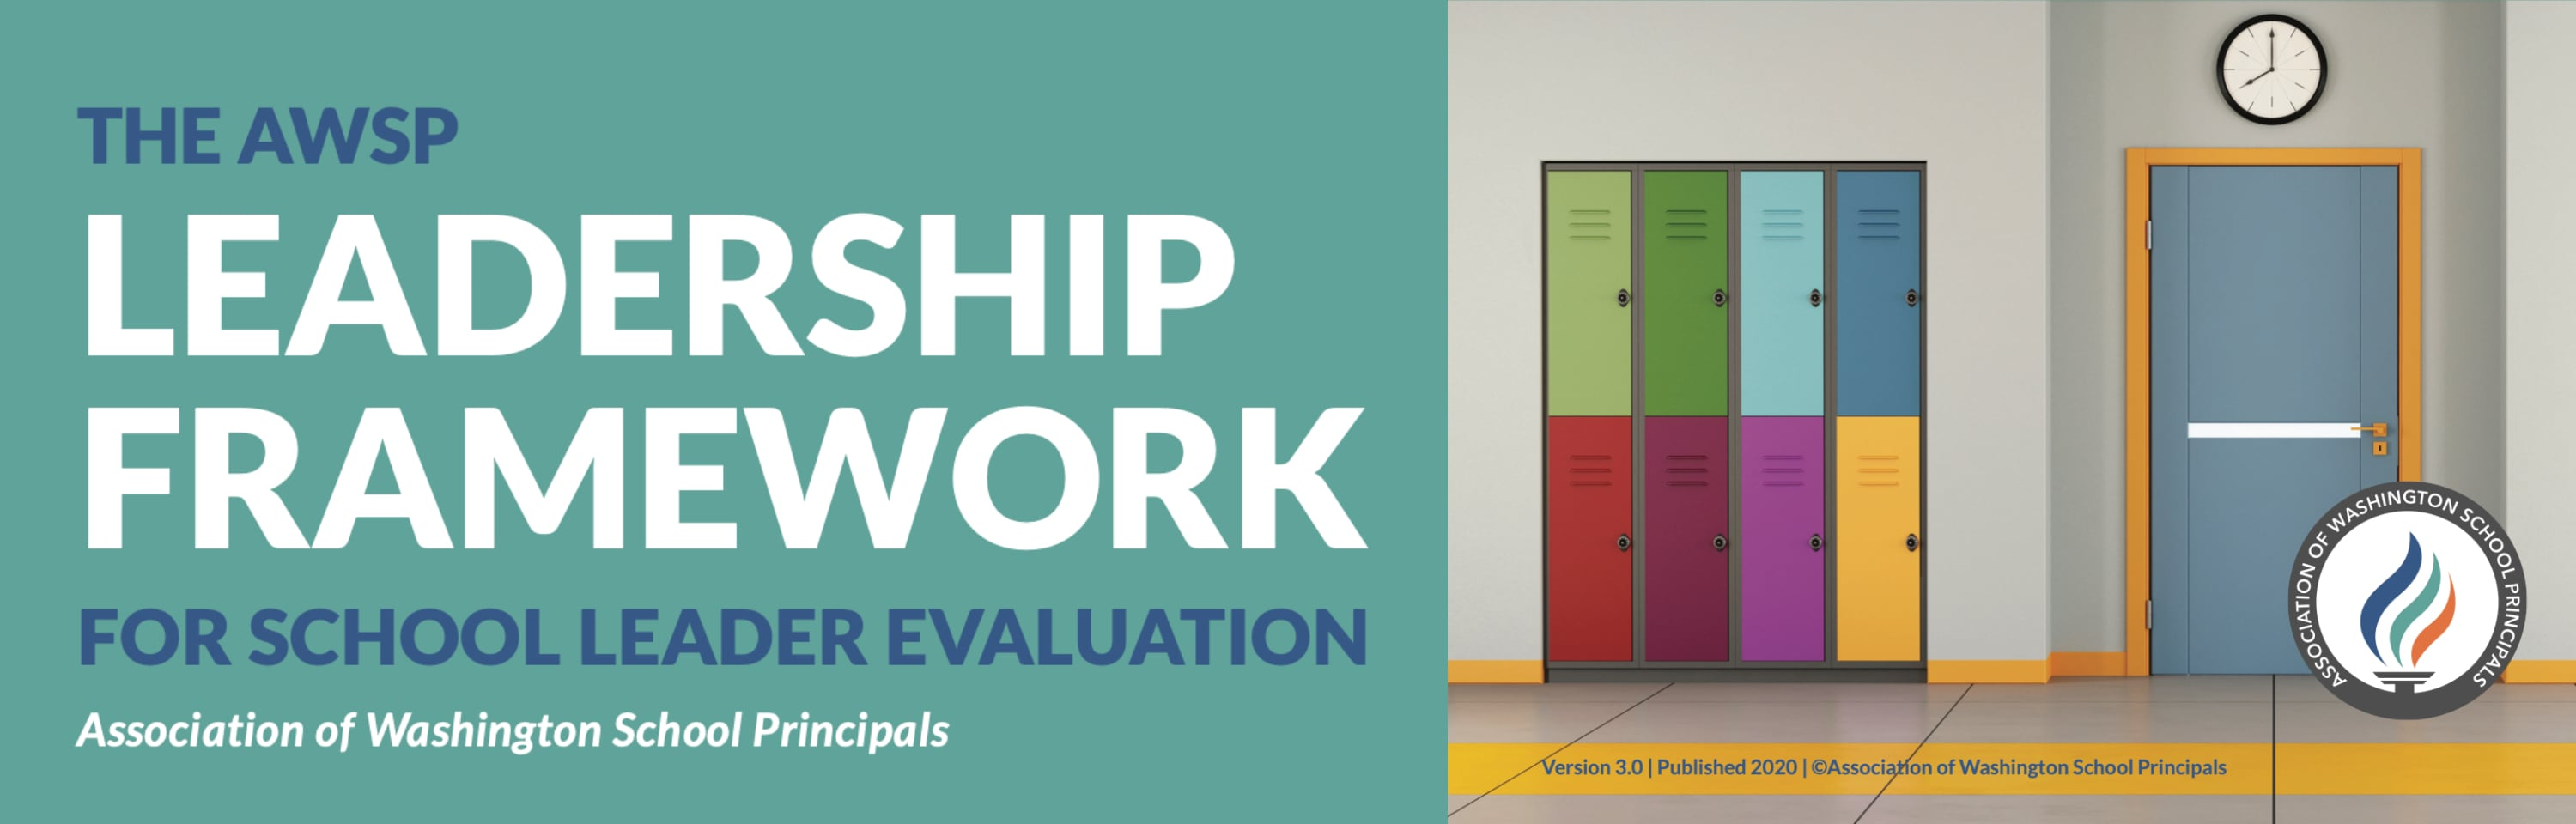 Leadership Framework Header Image